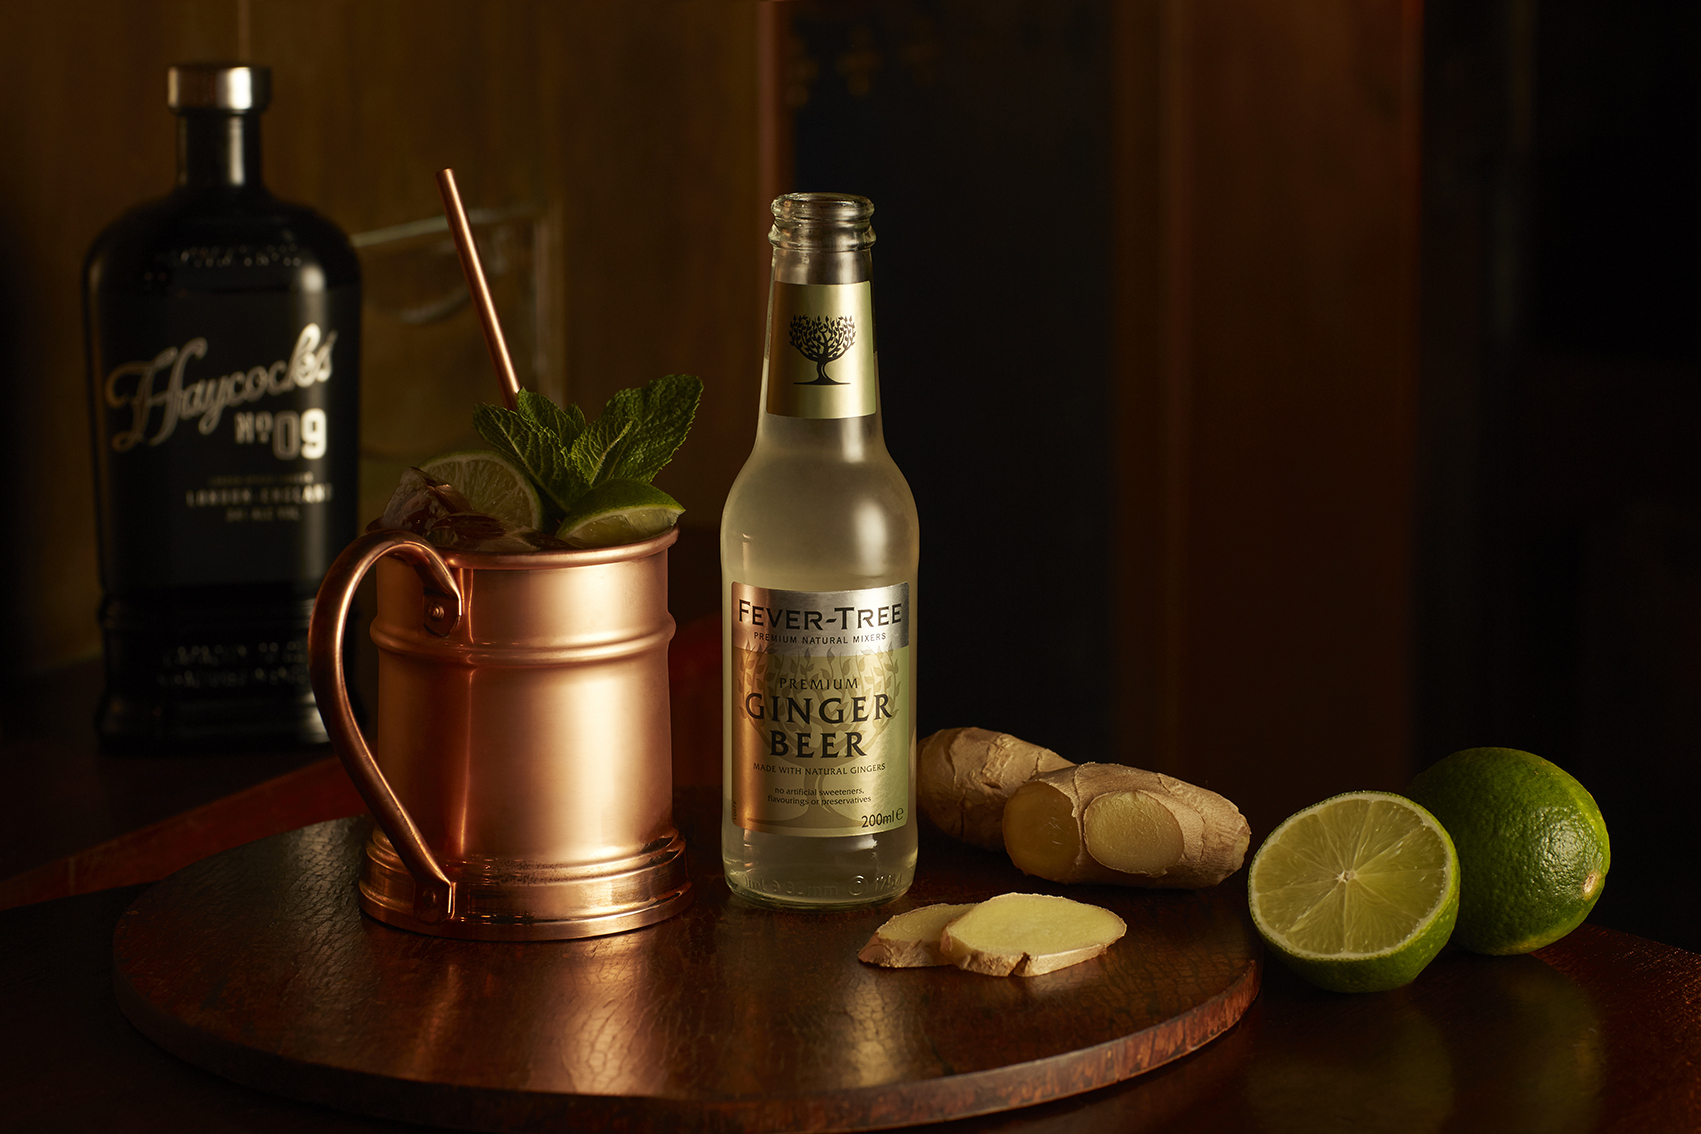 Haycock's No.9 stood on the left with a bronze cup and ginger beer next to it